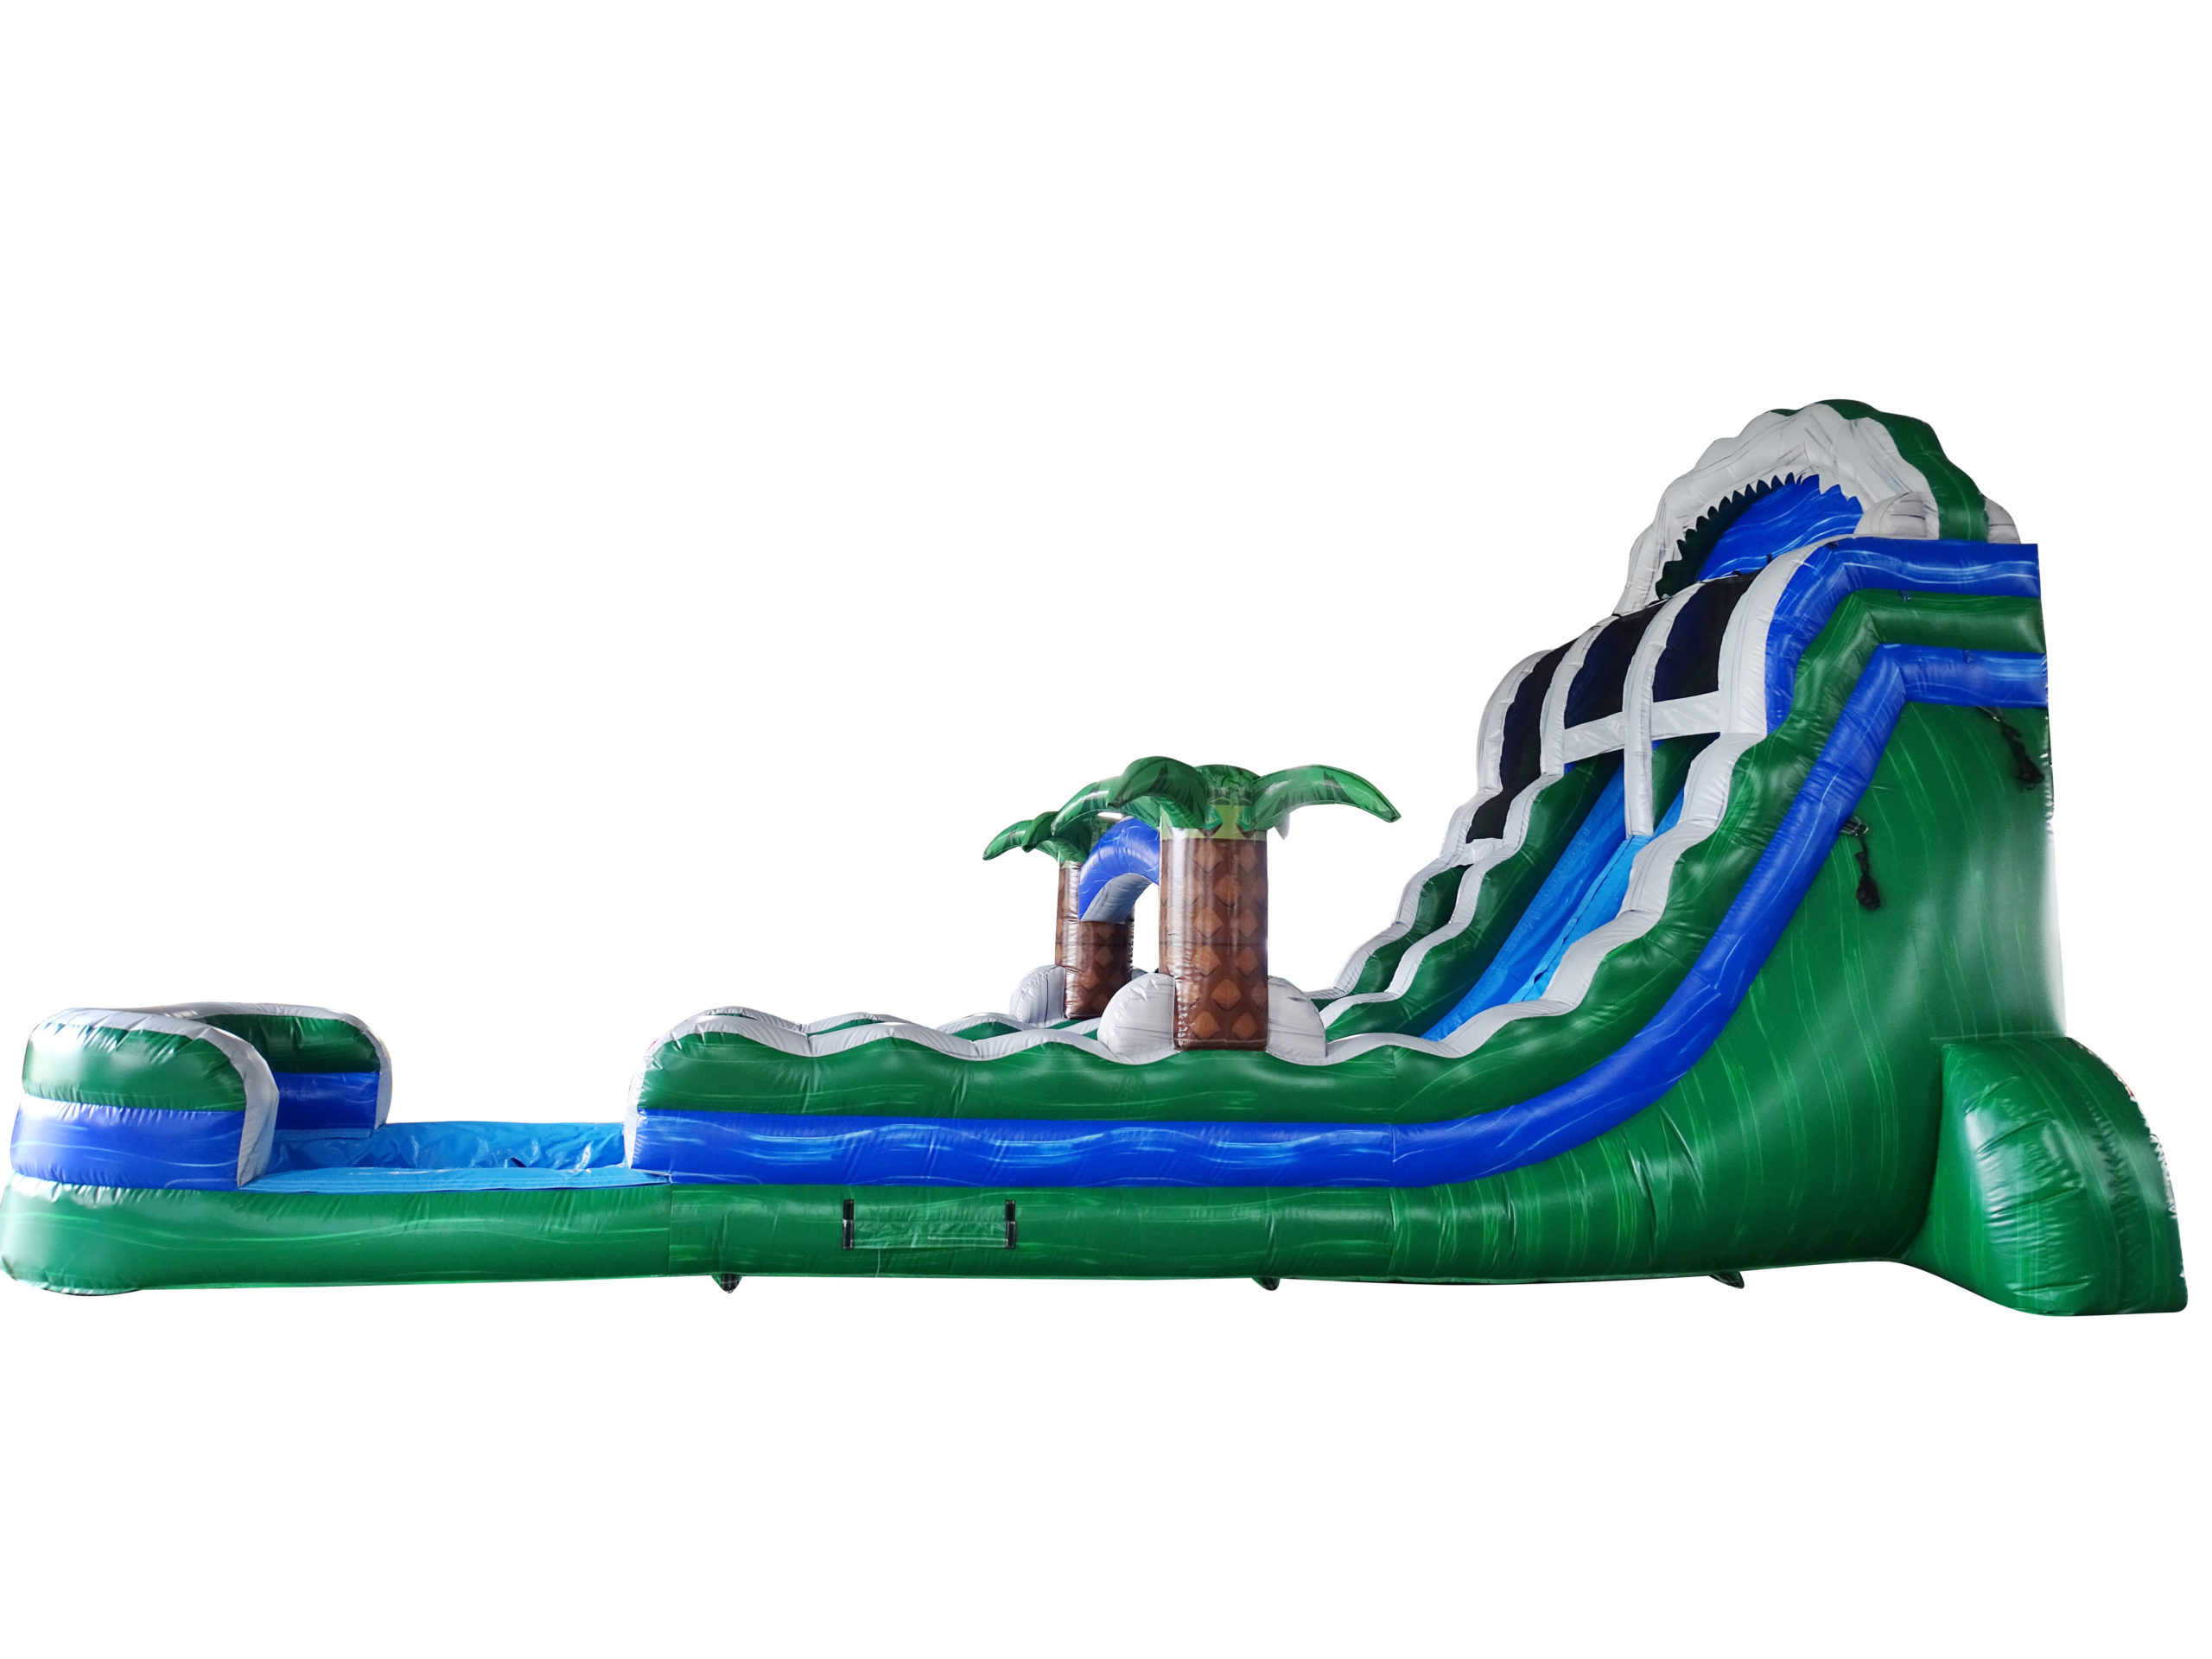 19ft-Green-Gush-2-2-scaled